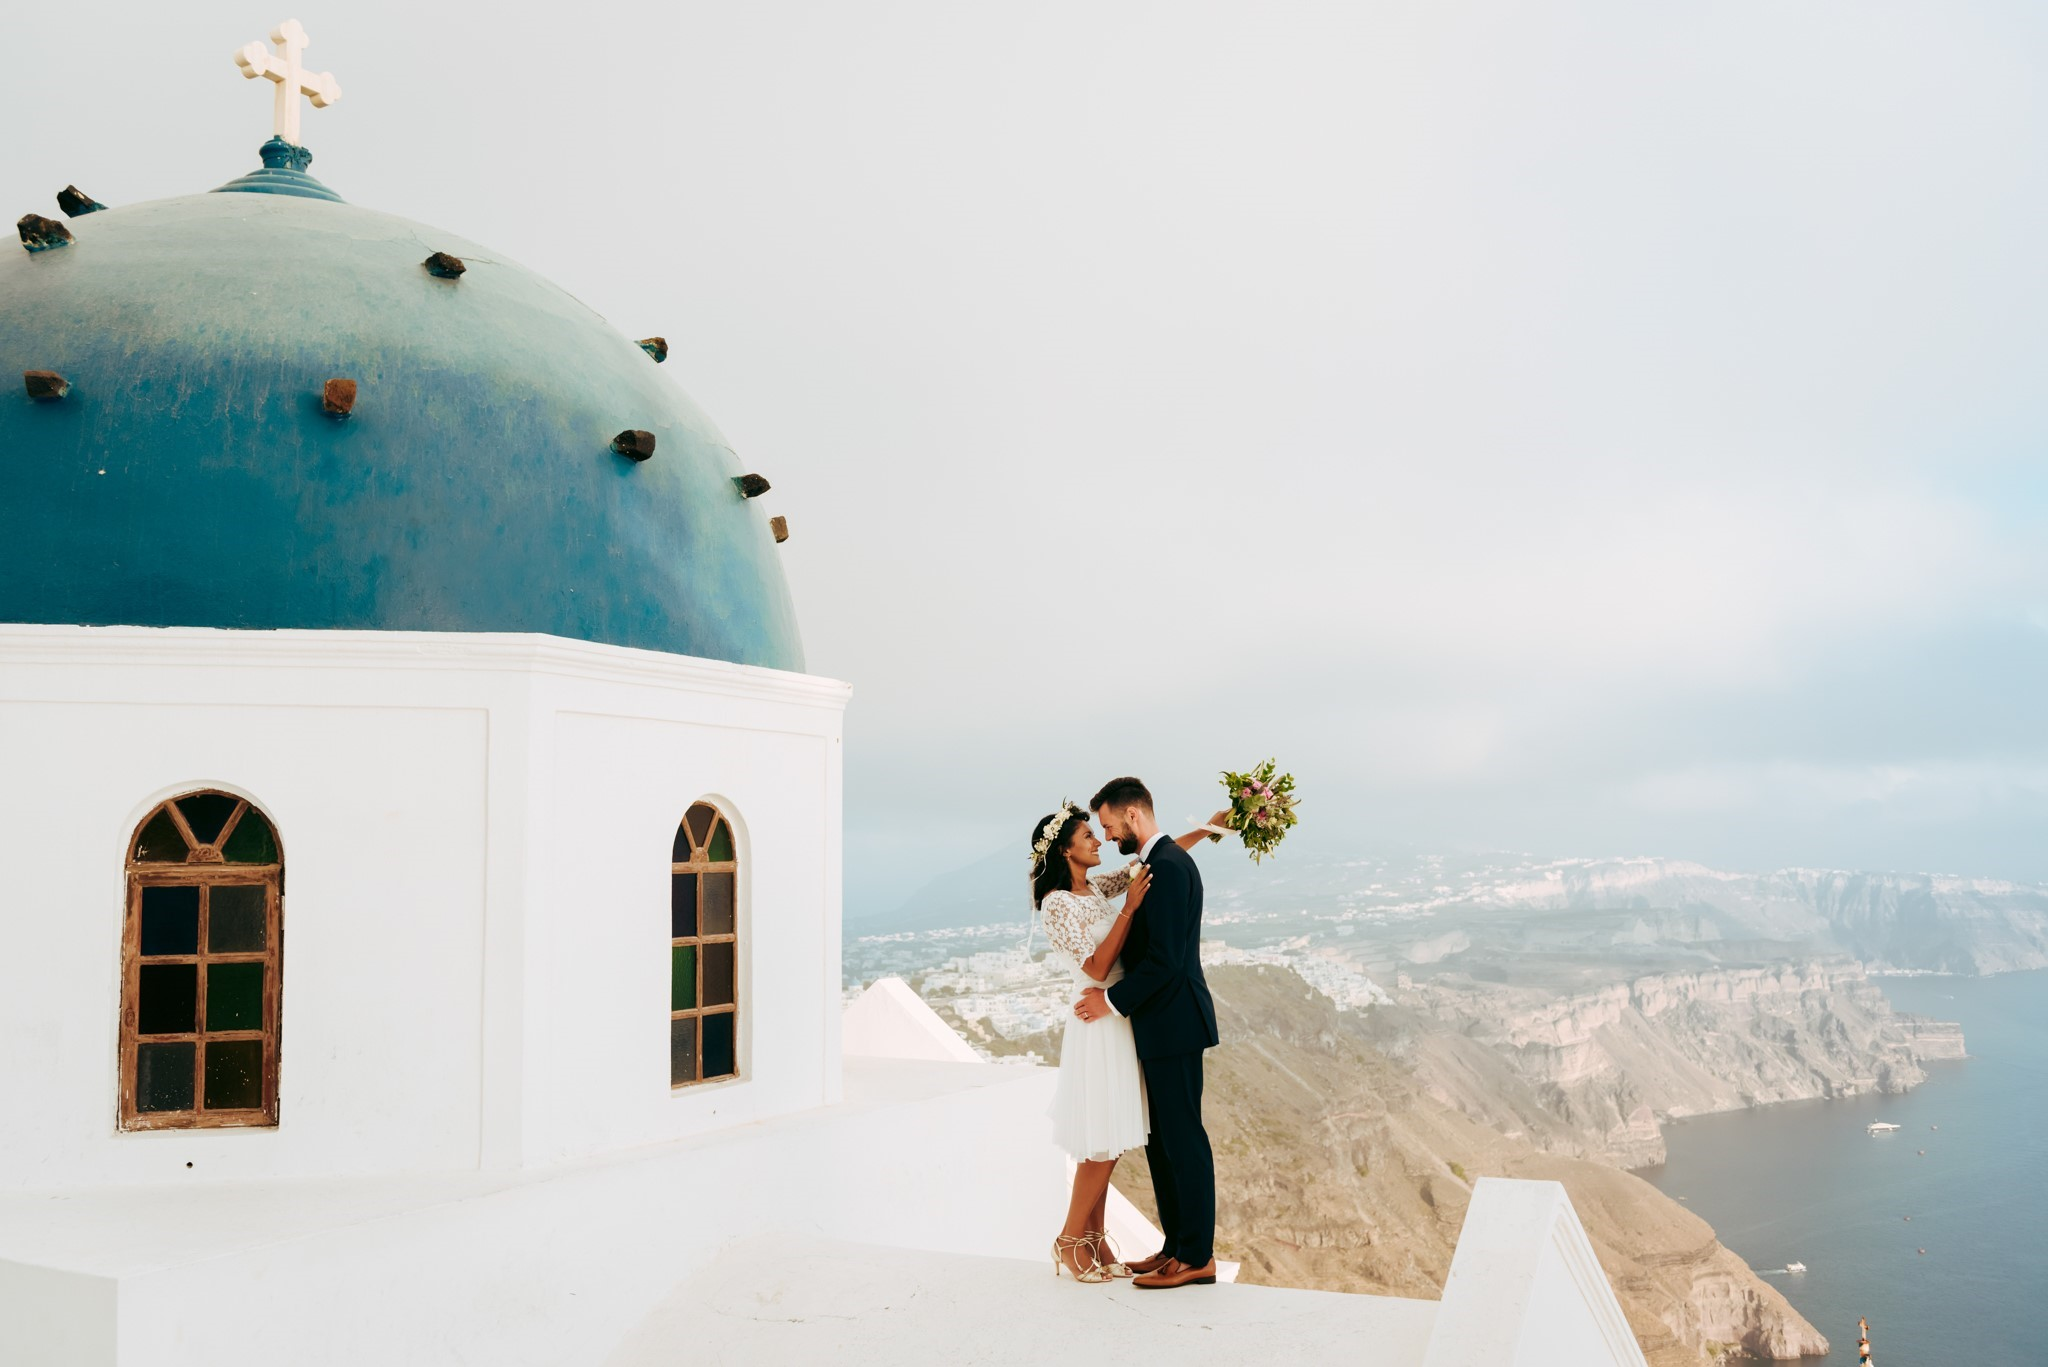 The Dos and Don'ts of Planning a Destination Wedding